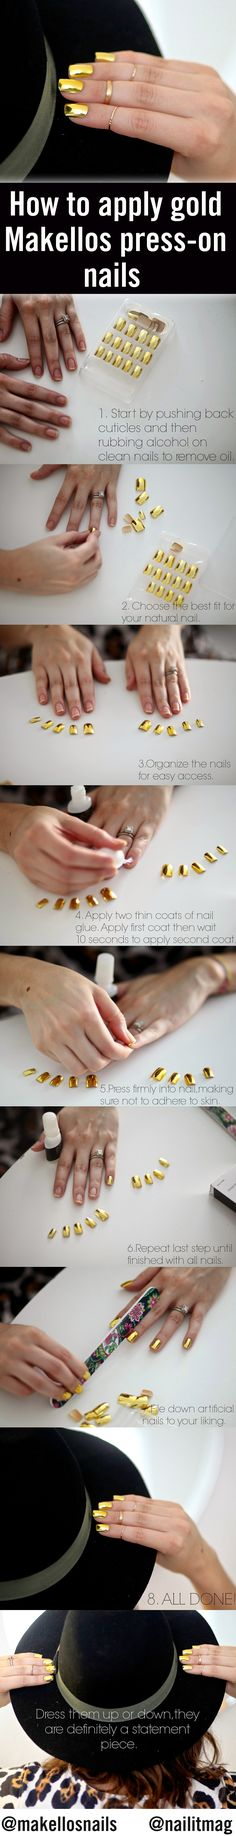 How to apply shiny gold metallic Makellos press-on nails!